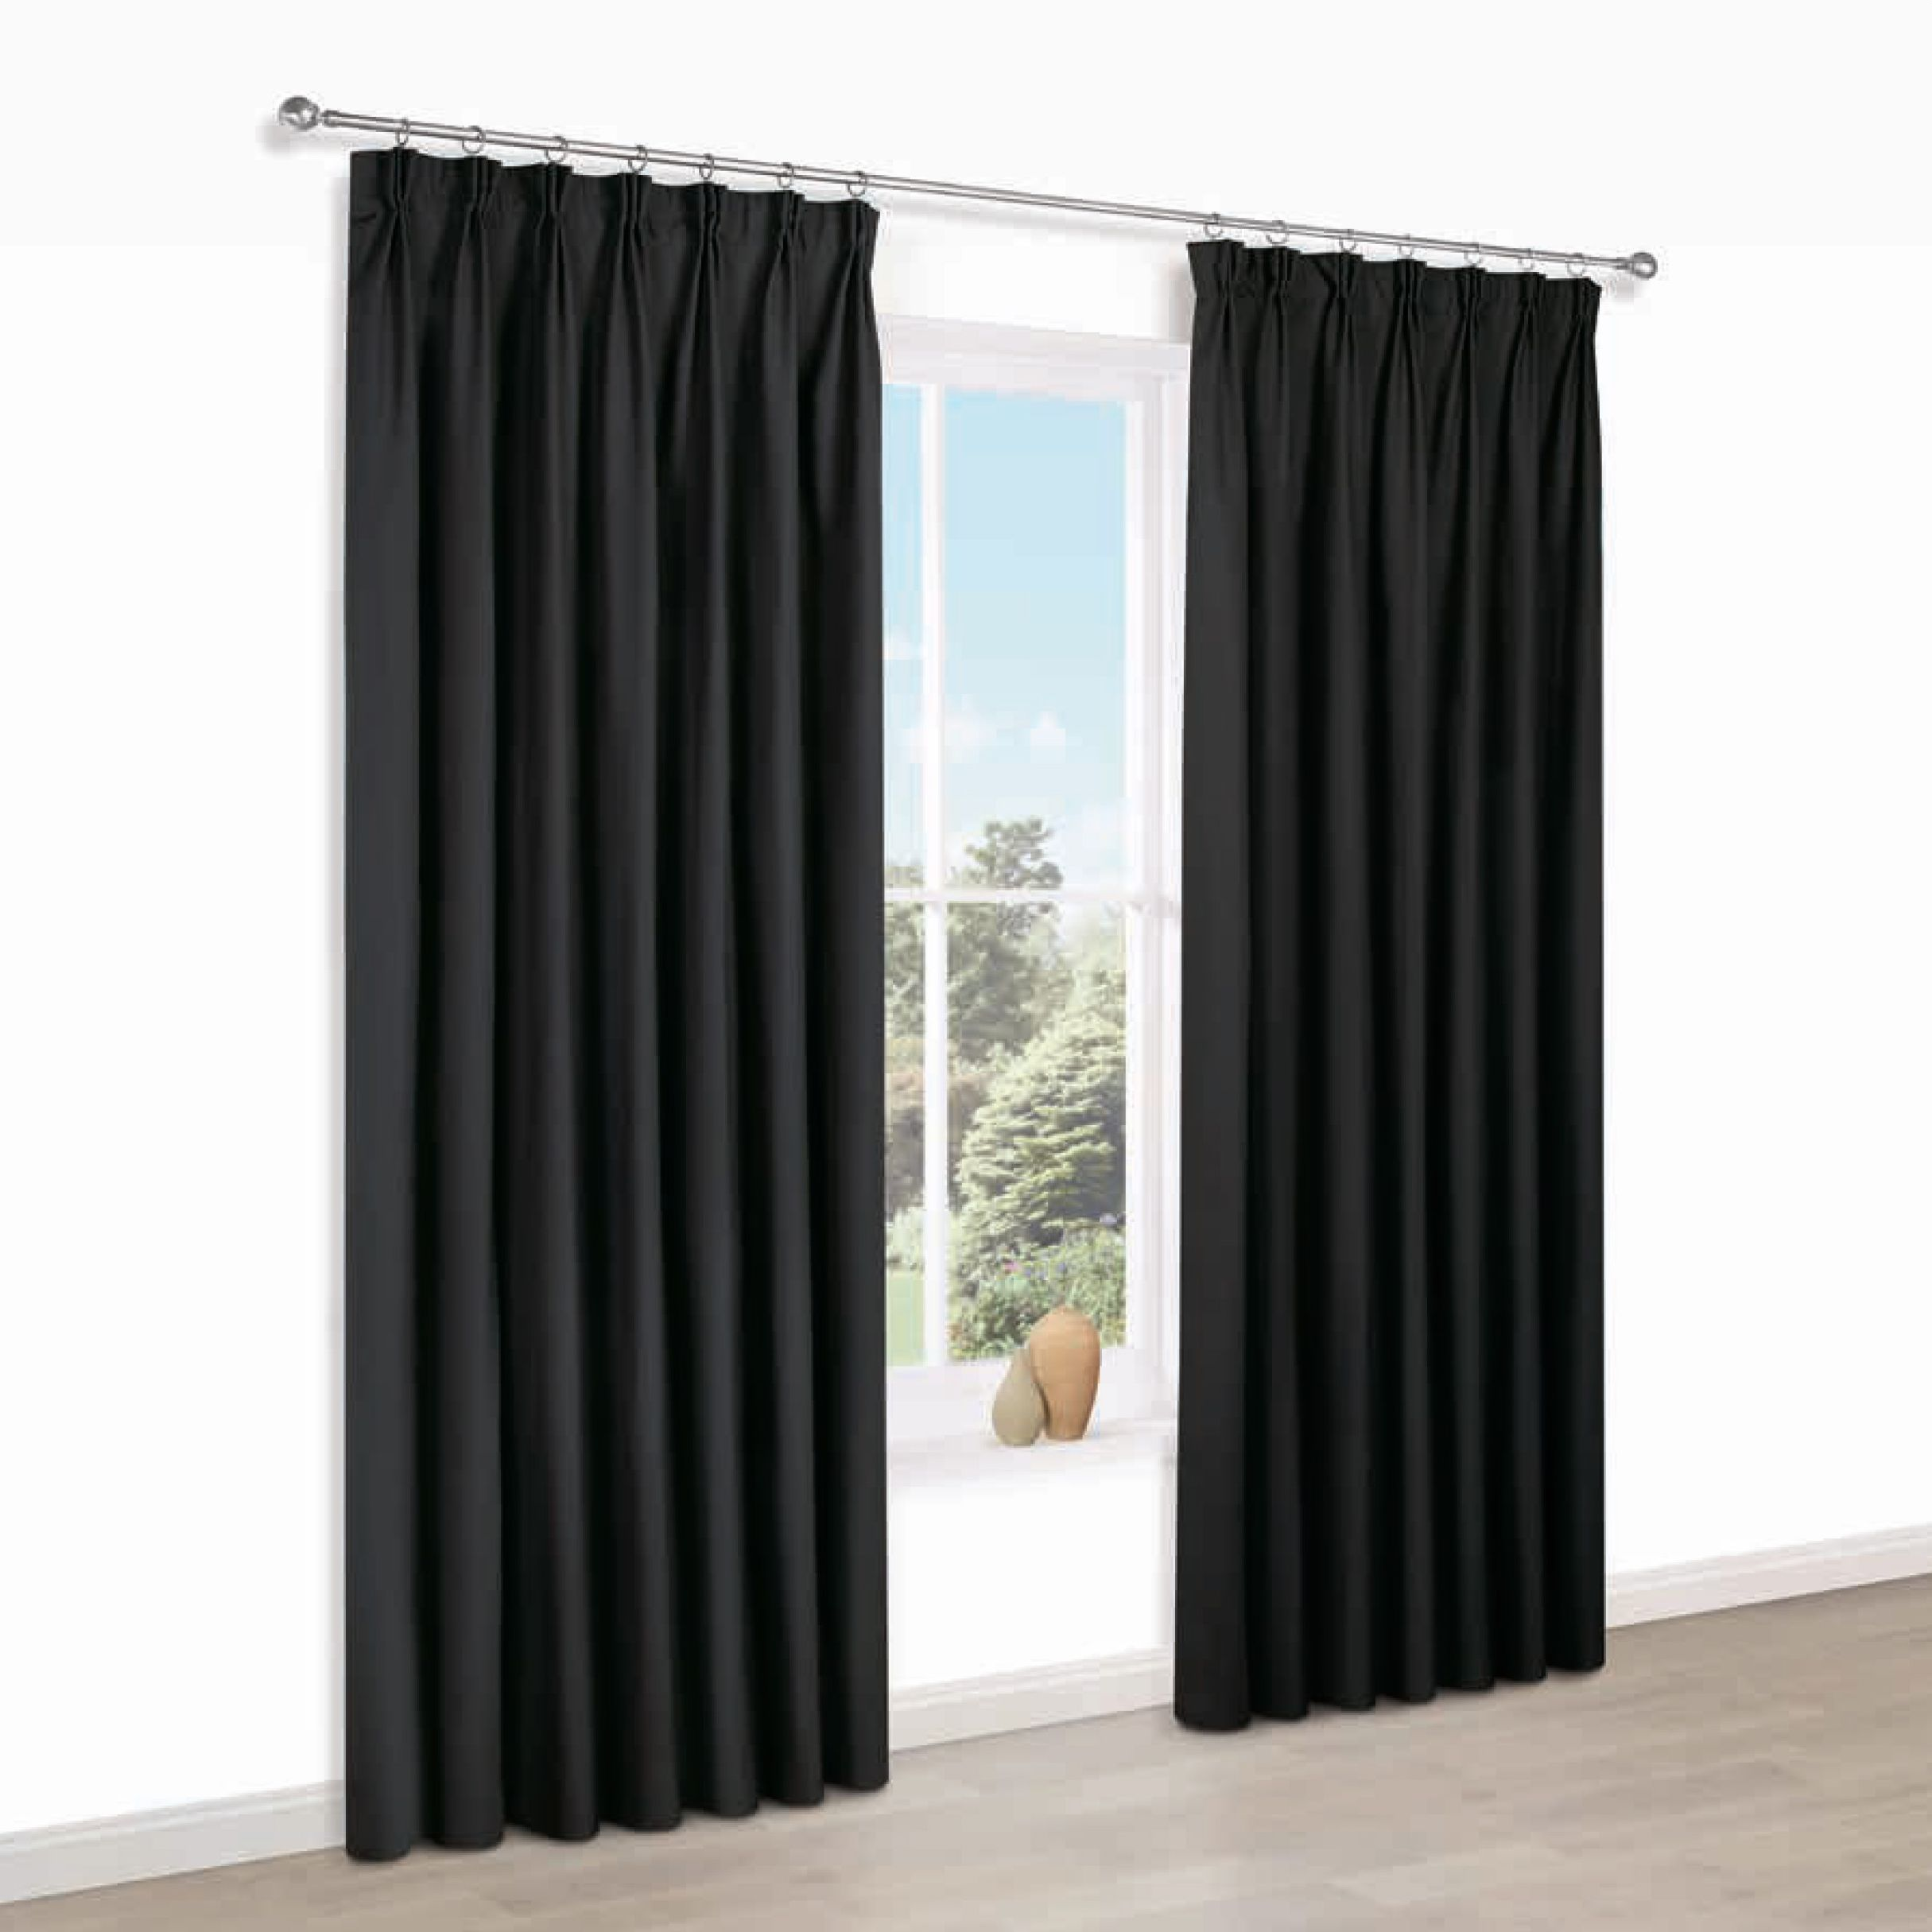 b q grey pencil pleat curtains. Black Bedroom Furniture Sets. Home Design Ideas